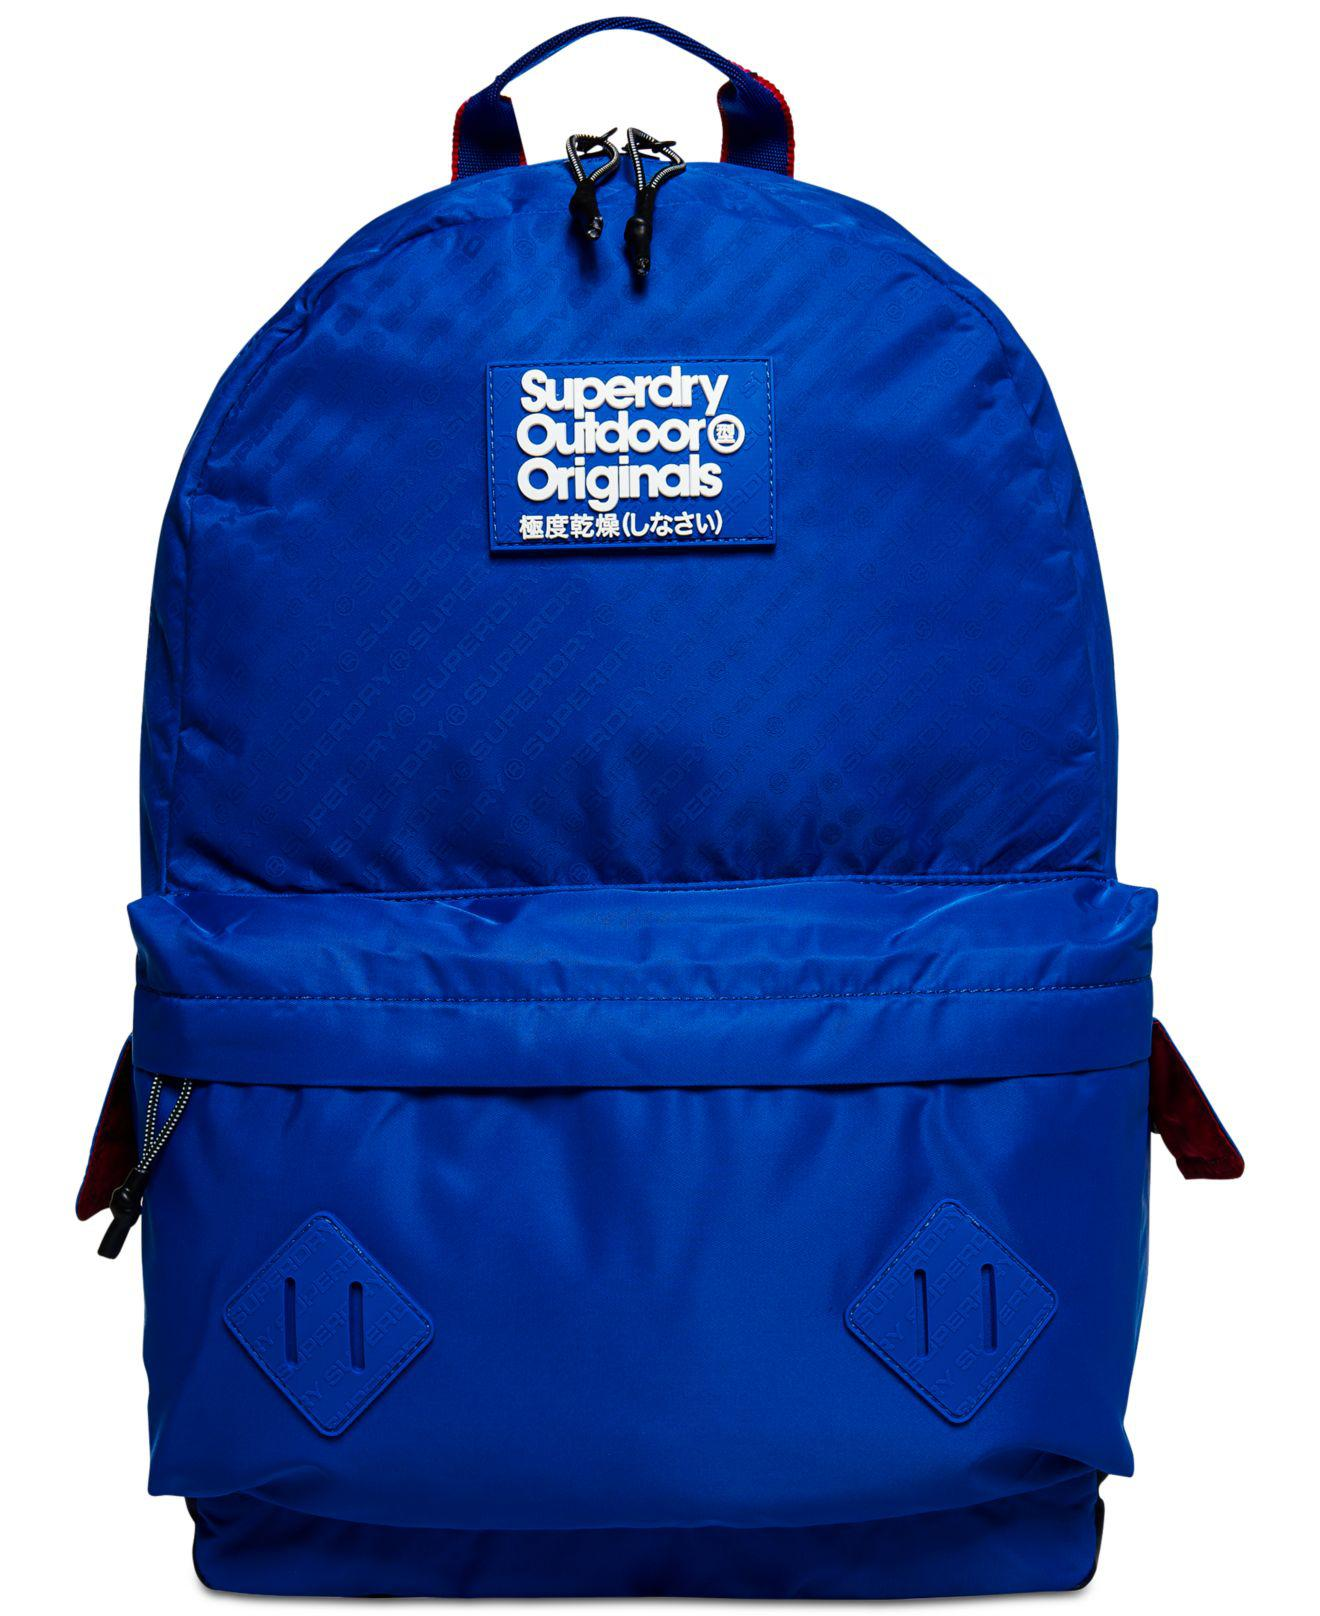 9f573731c0a Lyst - Superdry Hamilton Montana Backpack in Blue for Men